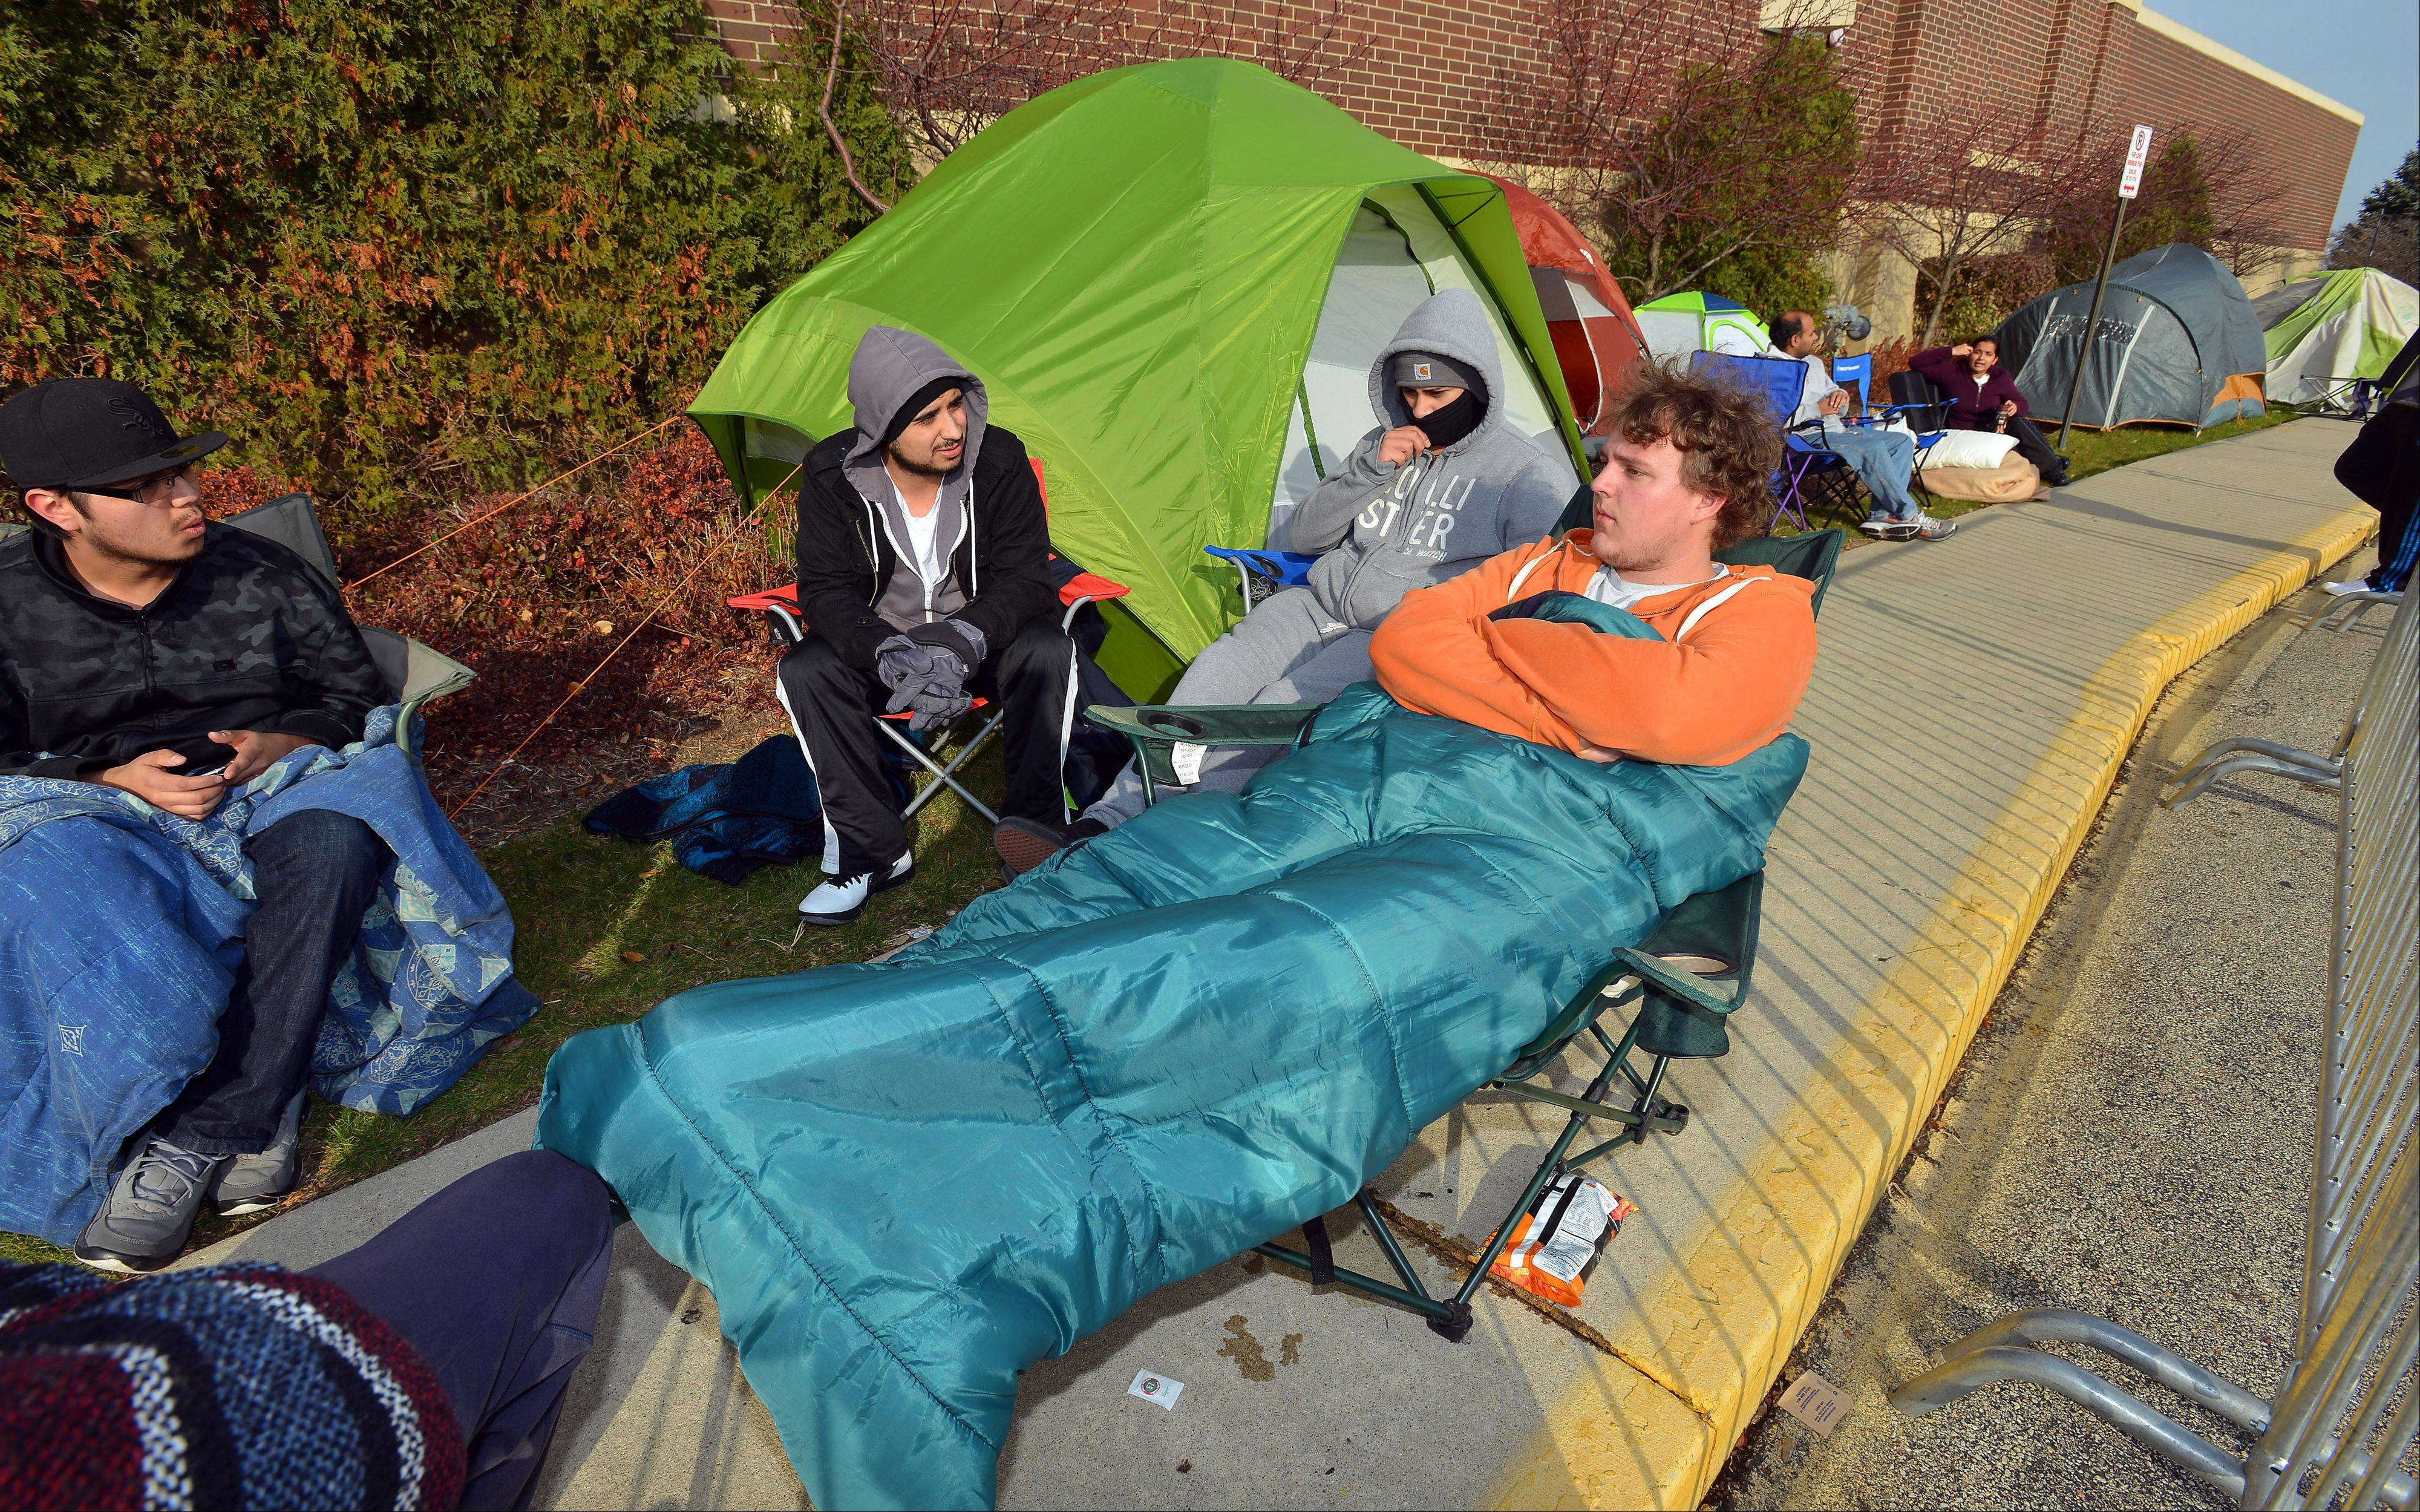 Matt Runowski,20, of Streamwood keeps warm in his sleeping bag with the rest of his friends as they wait on Best Buy's Black Friday deal, a 40-inch flat screen television for 179.99.